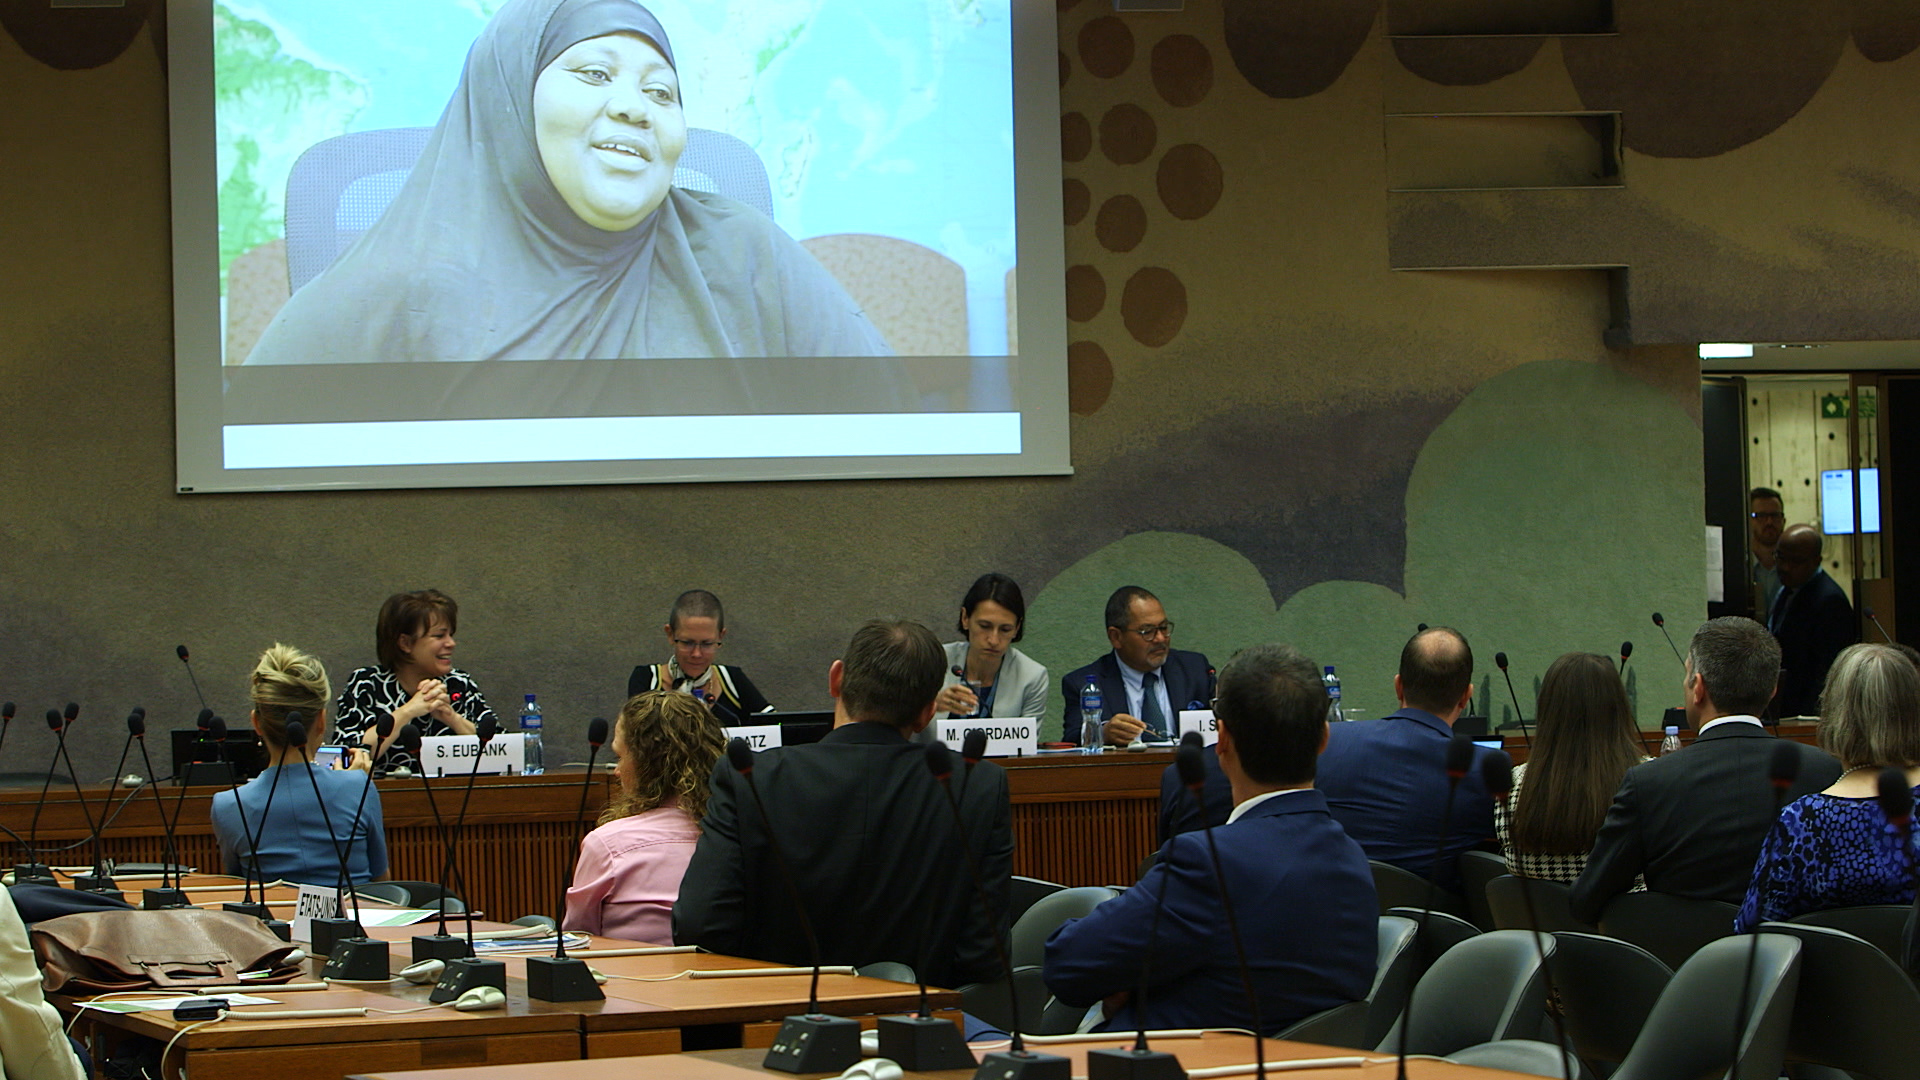 Sister Sharon Eubank, president of Latter-day Saint Charities, leads a panel discussion at the U.N. in Geneva, Tuesday, Sept. 17, 2019.